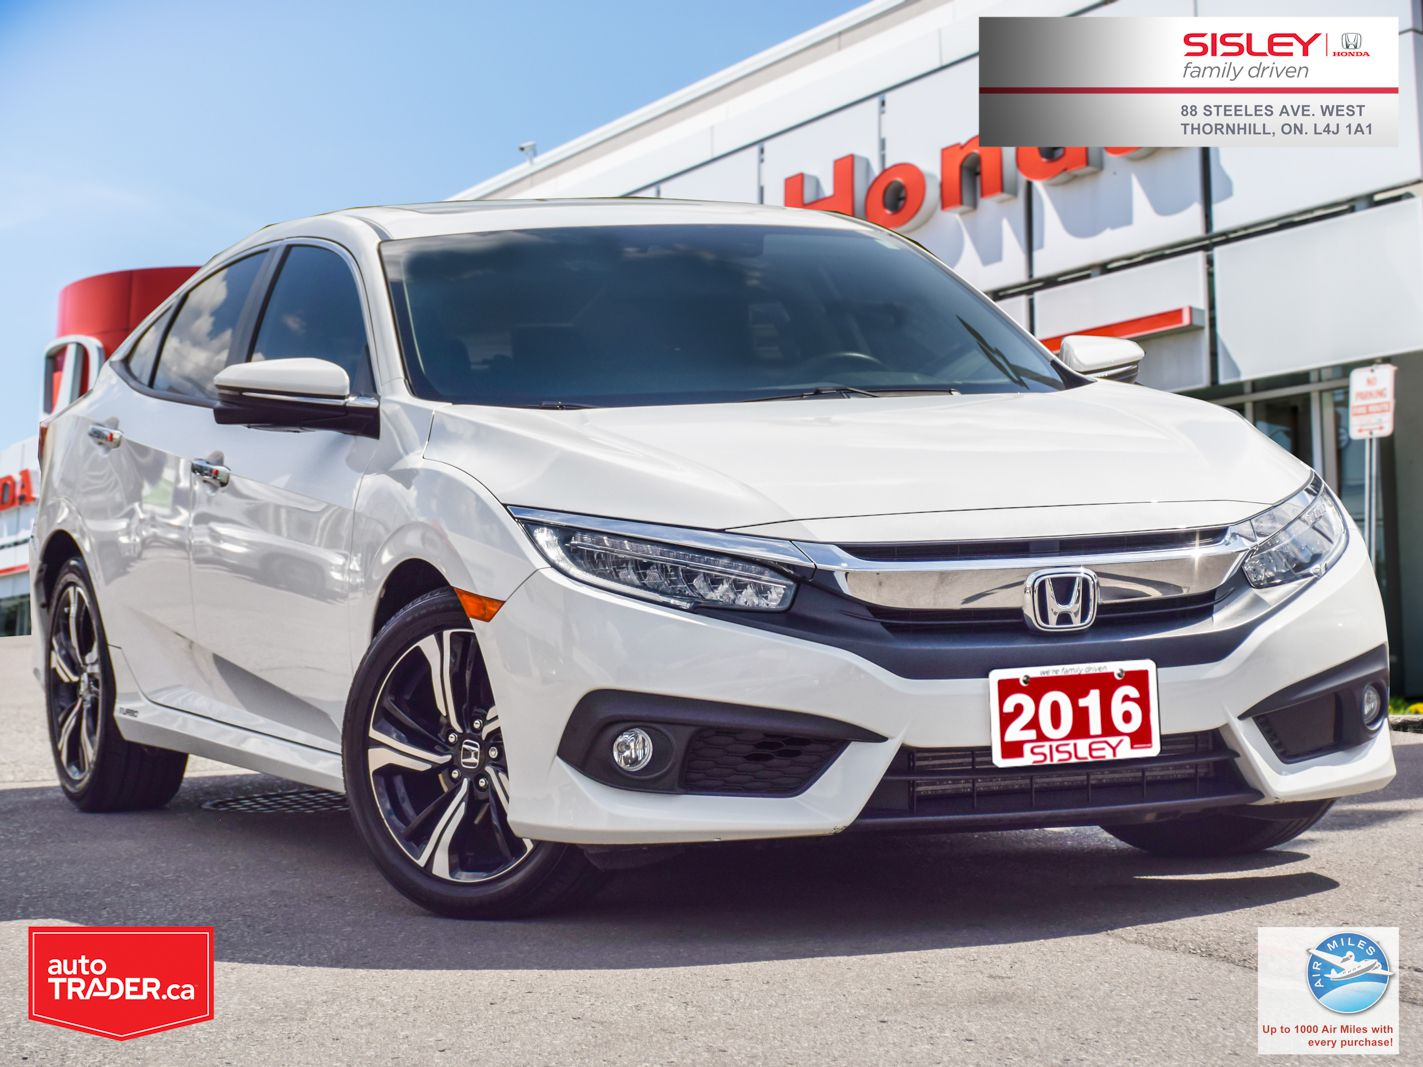 2016 Honda Civic Sedan Image